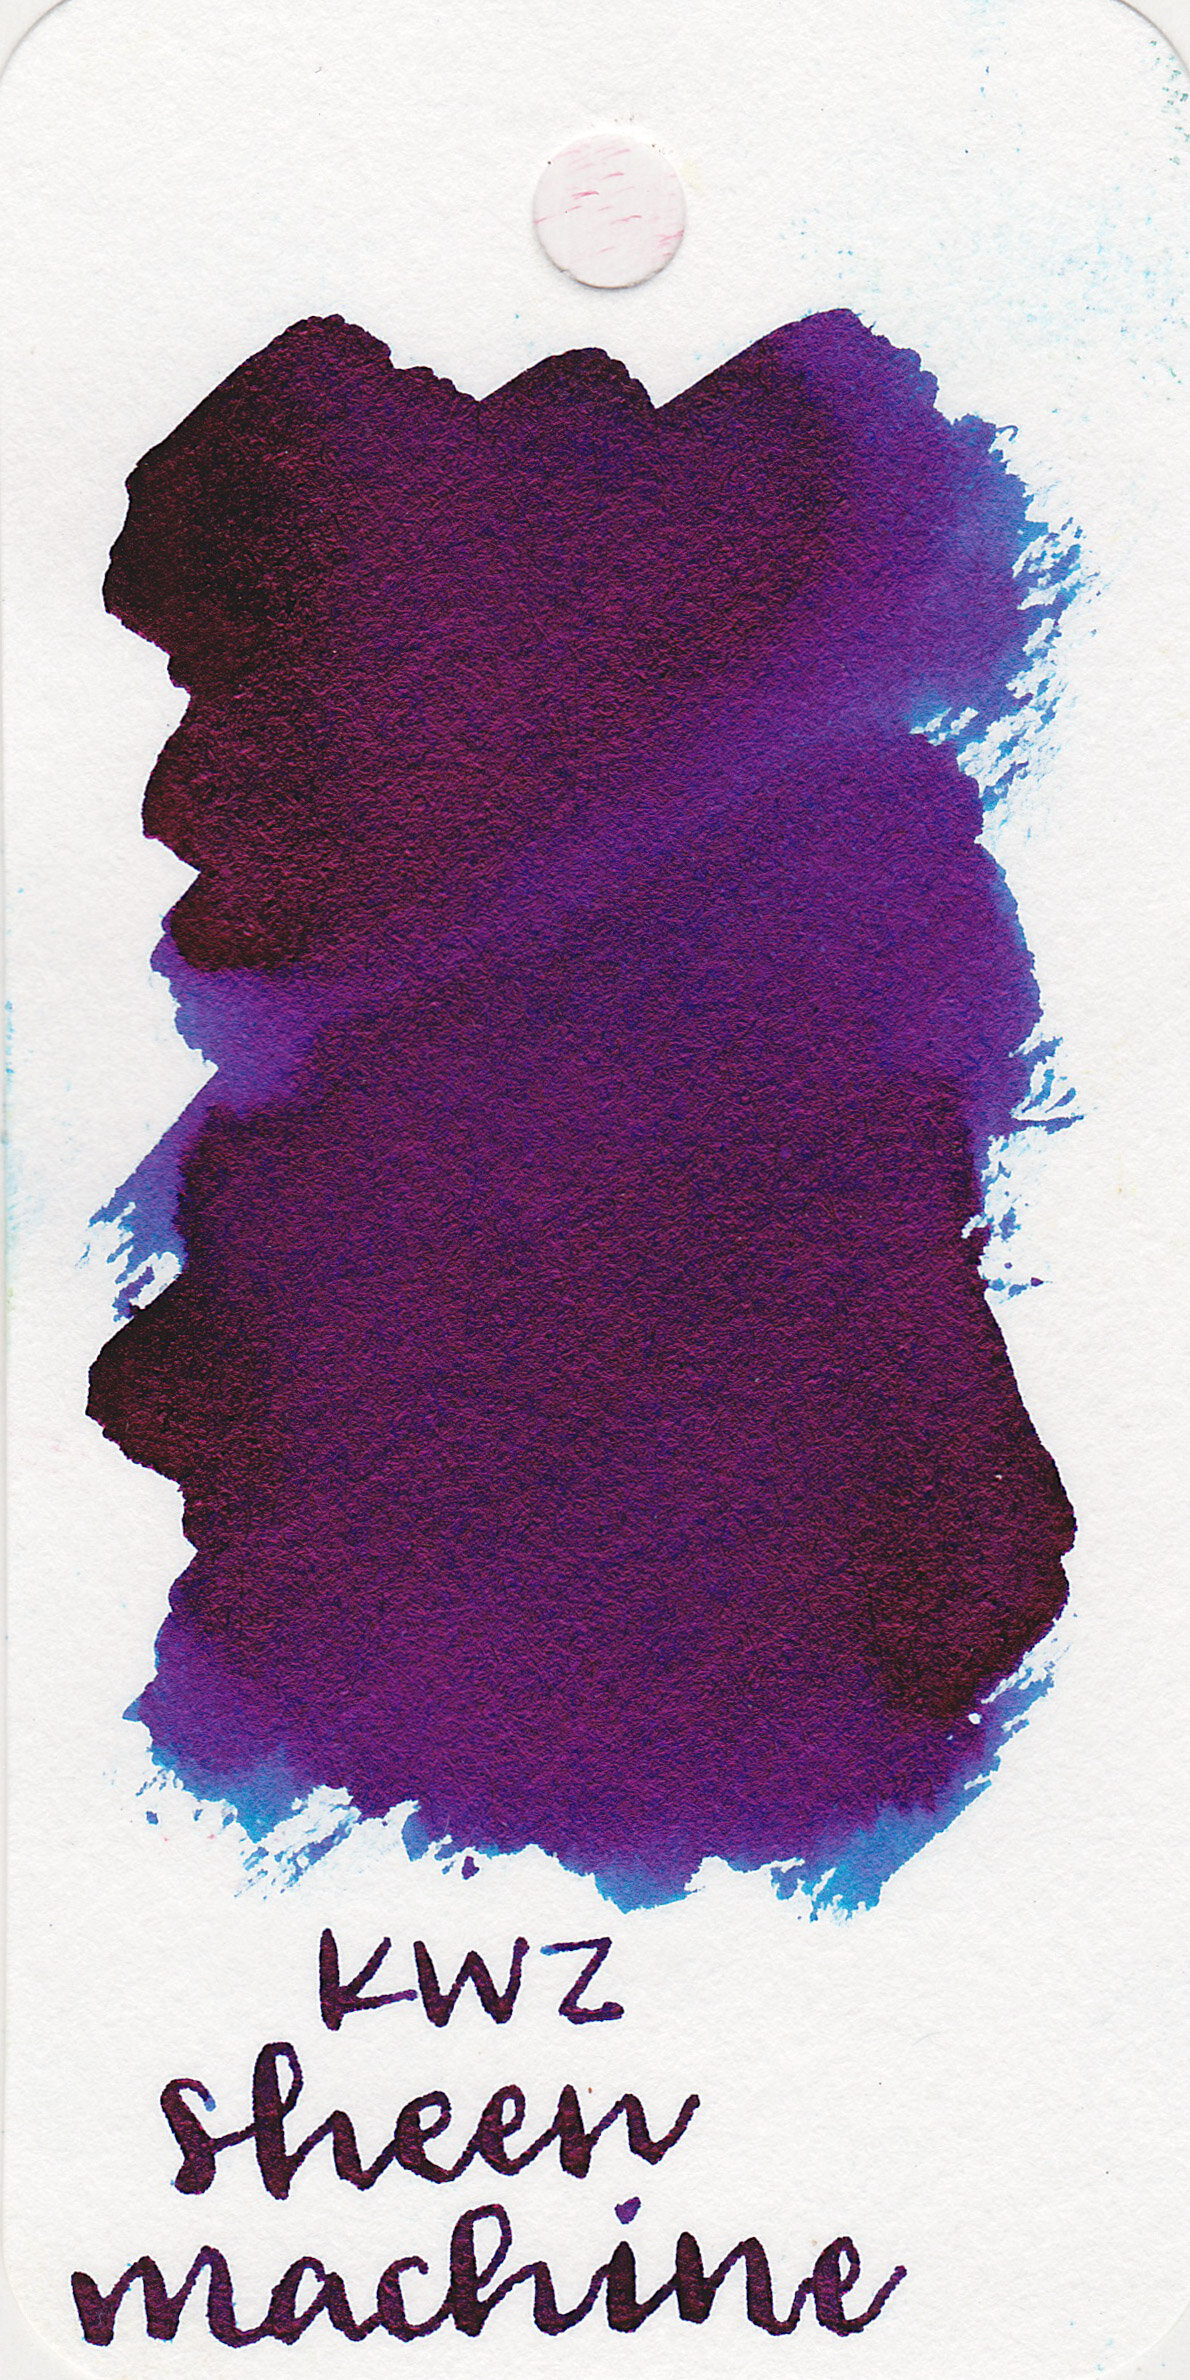 The color: - Sheen Machine is a dark blue with a ton of pink sheen.